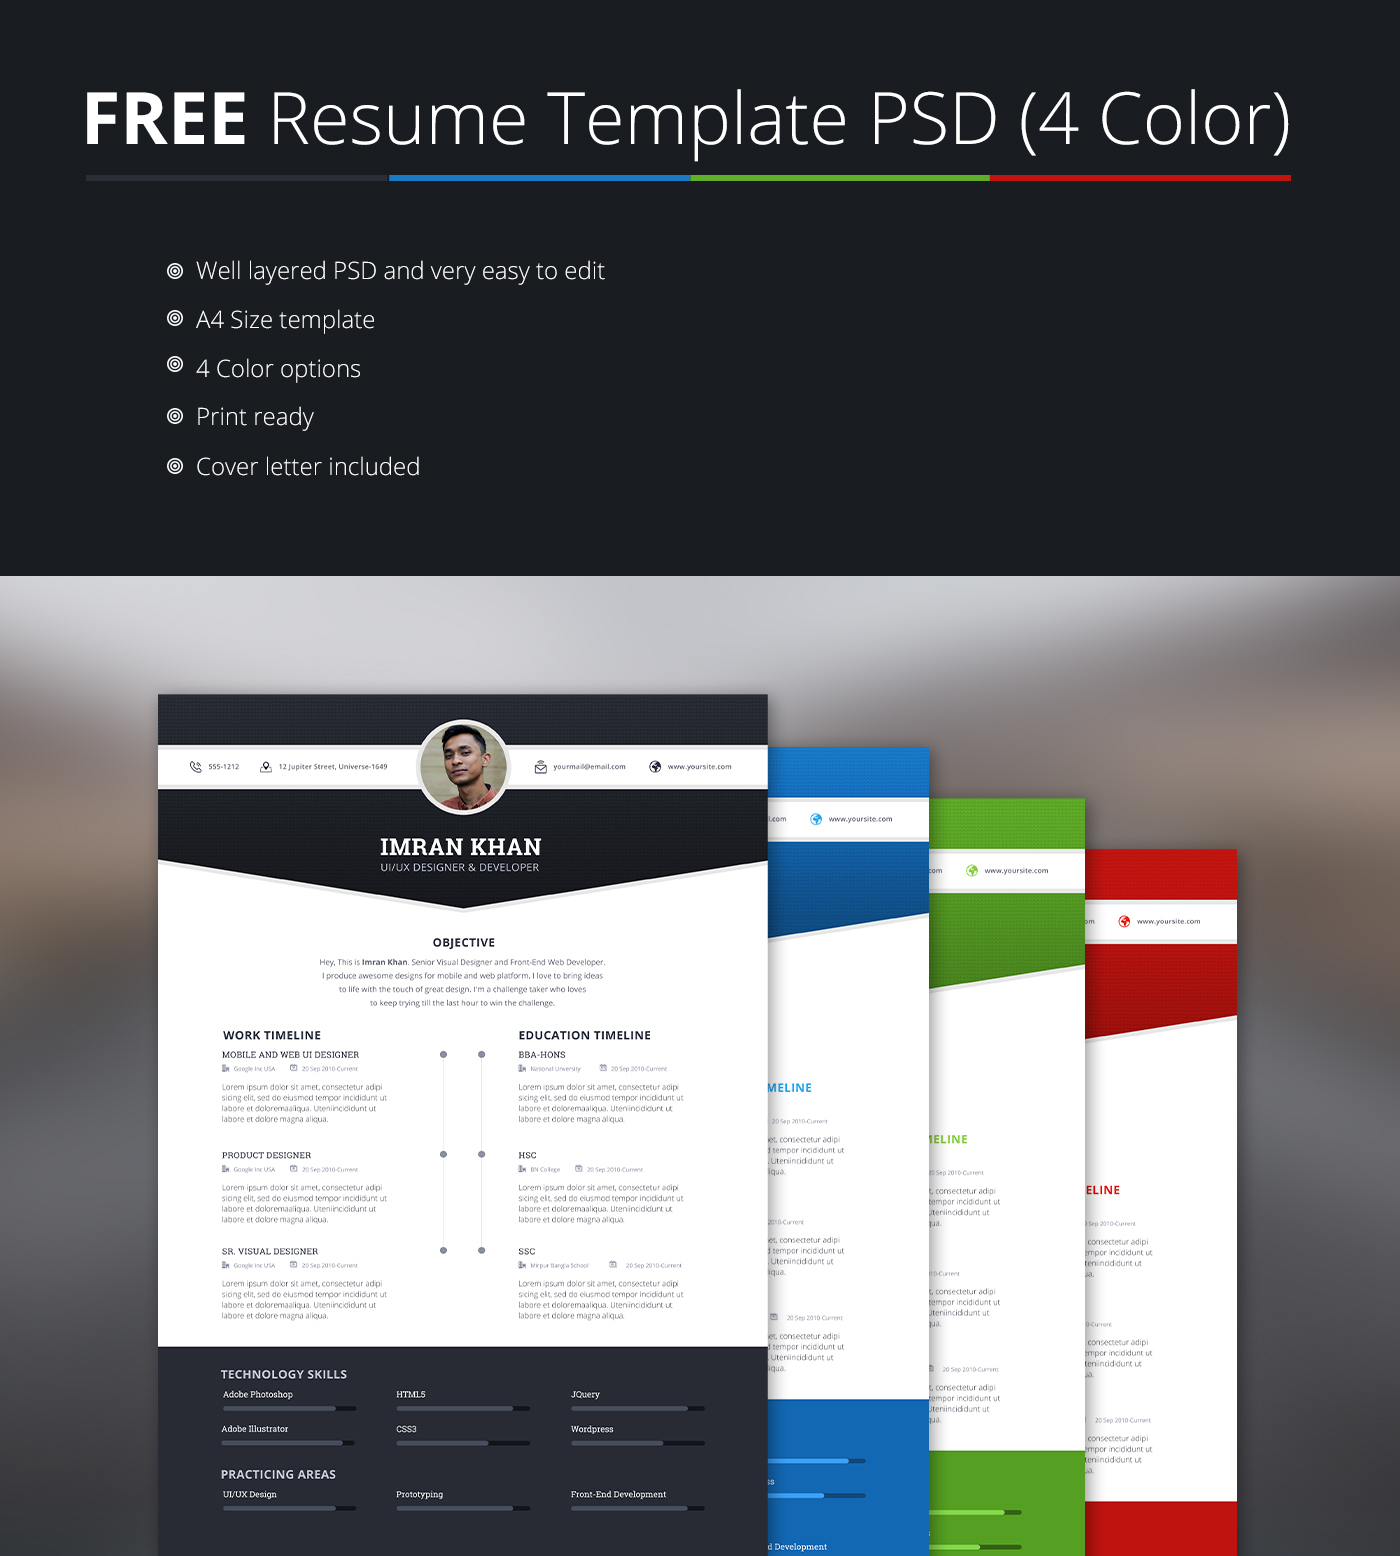 free resume template psd 4 colors on behance - Download Template Resume